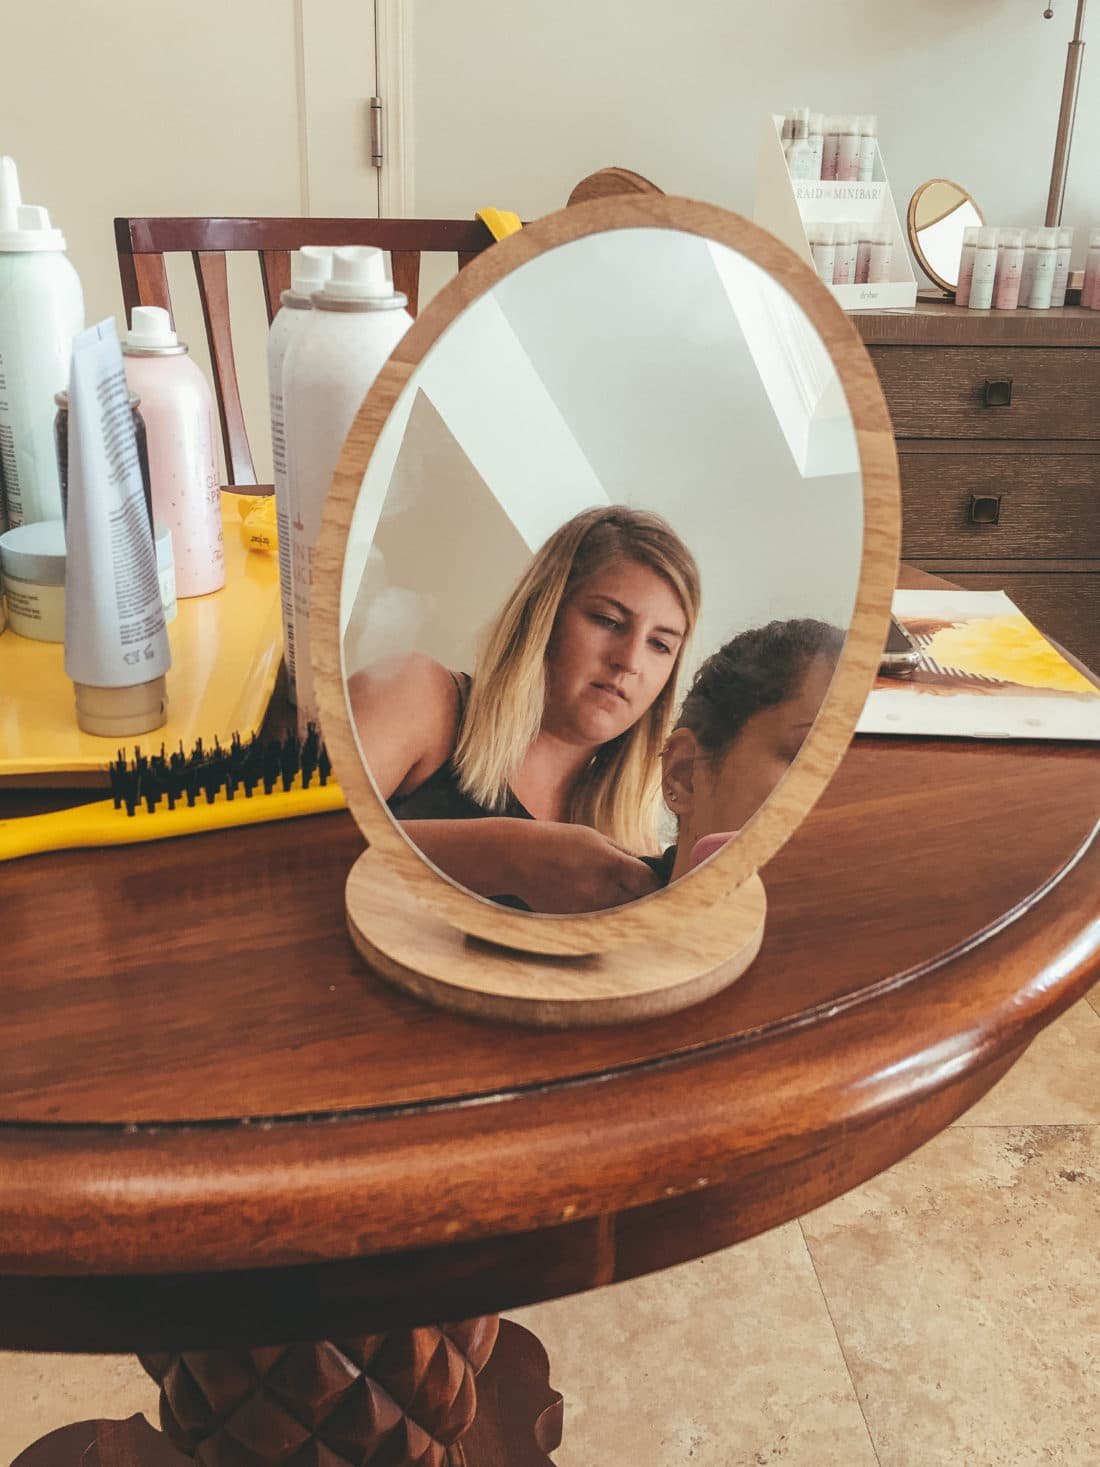 Mirror Mermaid Hair Drybar Experience. My first time experiencing Drybar at Beaches Resorts in Turks and Caicos rocking a Mermaid Braid. Plus an Exclusive Interview with Alli Webb.